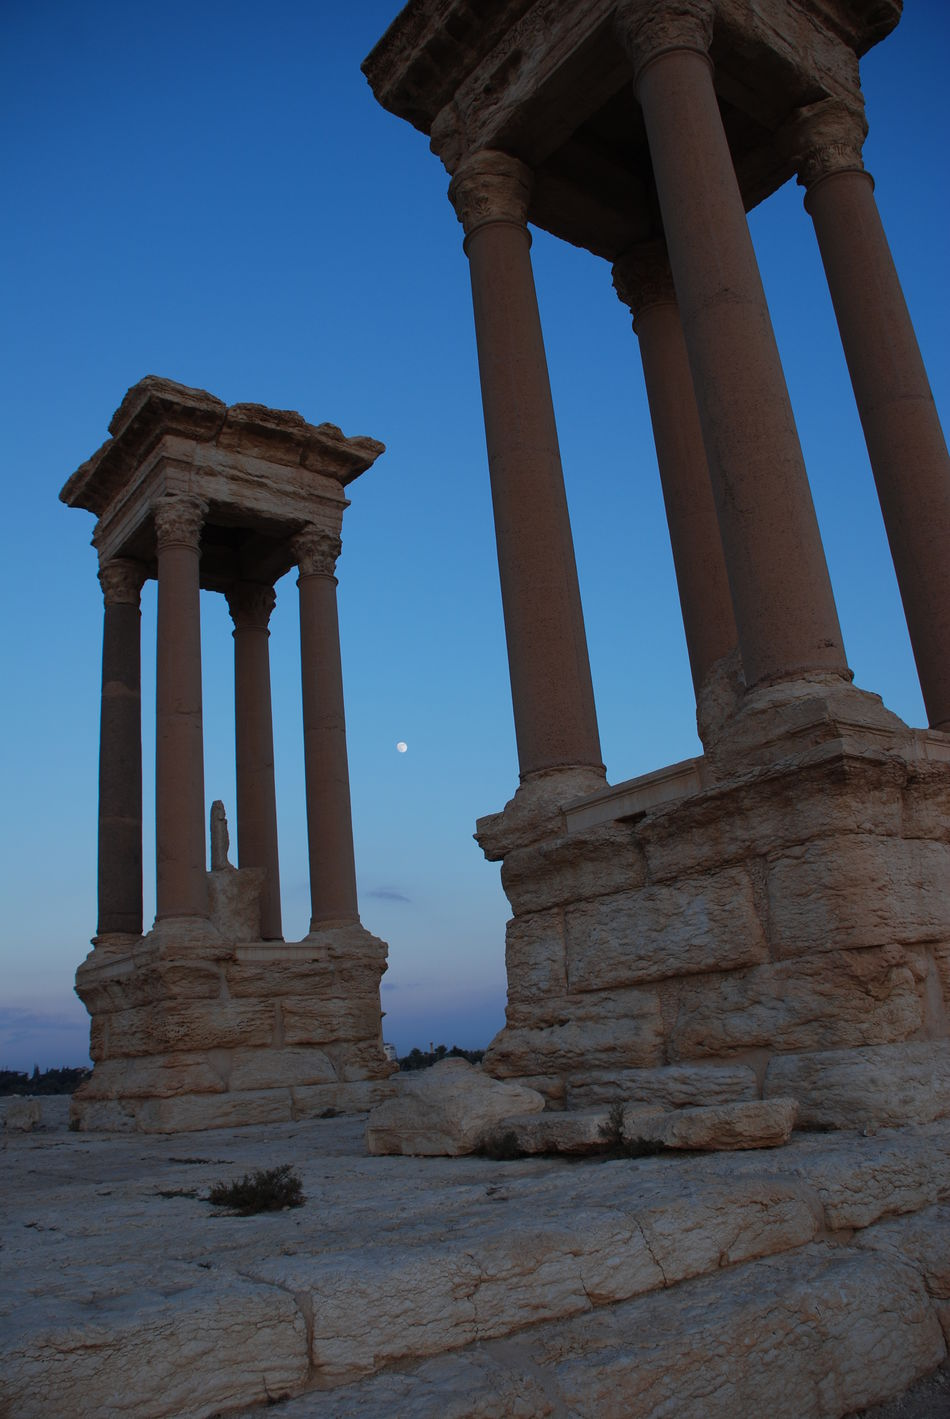 2009 Ancient Ancient Civilization Archaeology Architectural Column Architecture Before War Blue Built Structure Clear Sky Day History Monument No People Old Ruin Outdoors Palmyra Roman Architecture Roman Ruins Ruined Syria  Tetrapylon The Past Tourism Travel Travel Destinations